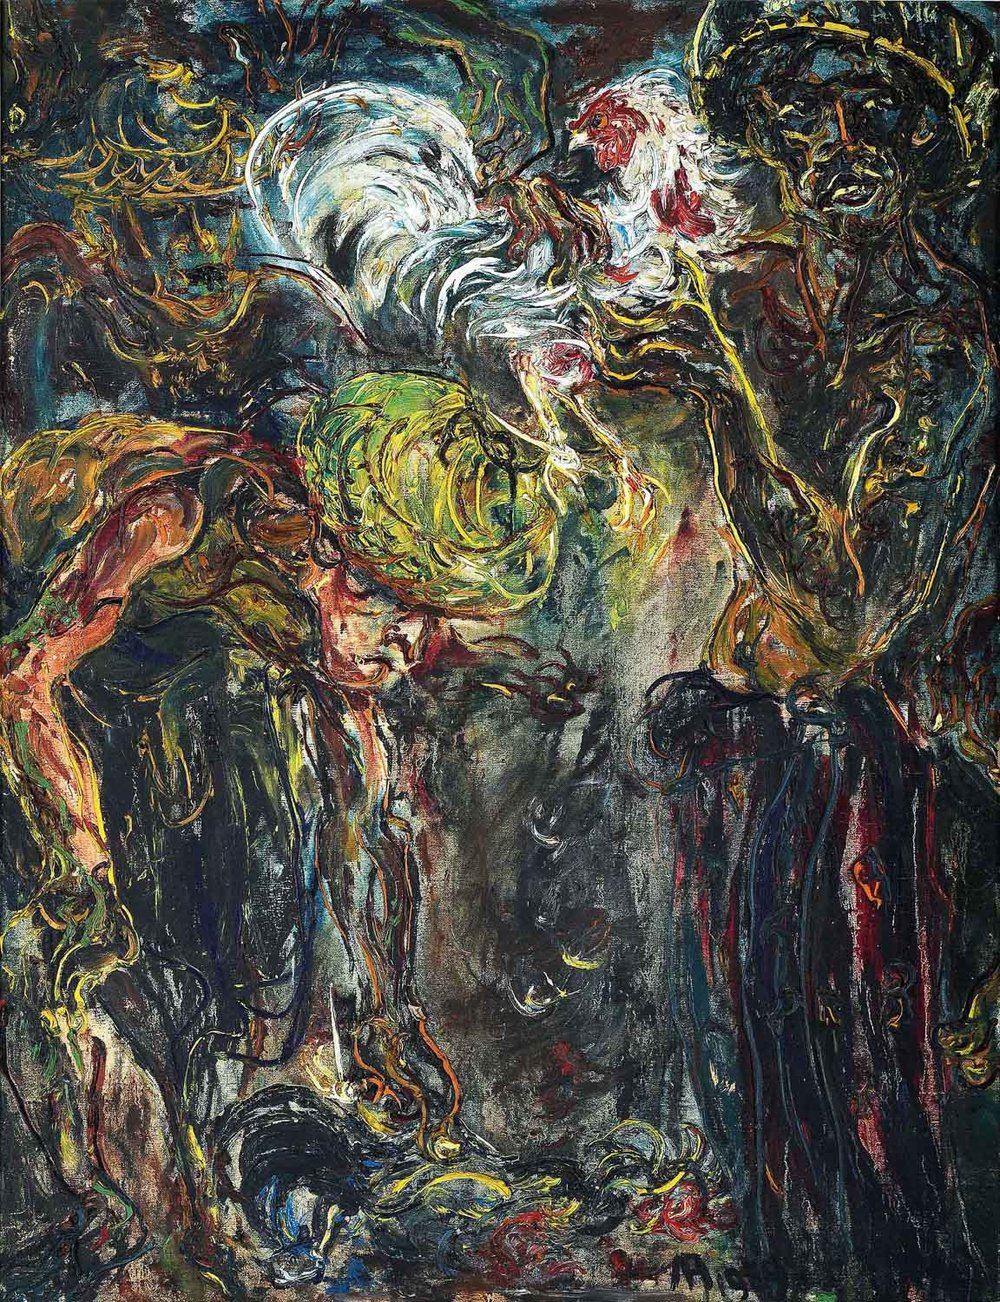 Affandi, 'Men with Fighting Roosters', 1959, oil on canvas, 128 x 99cm. Image courtesy of Christie's.